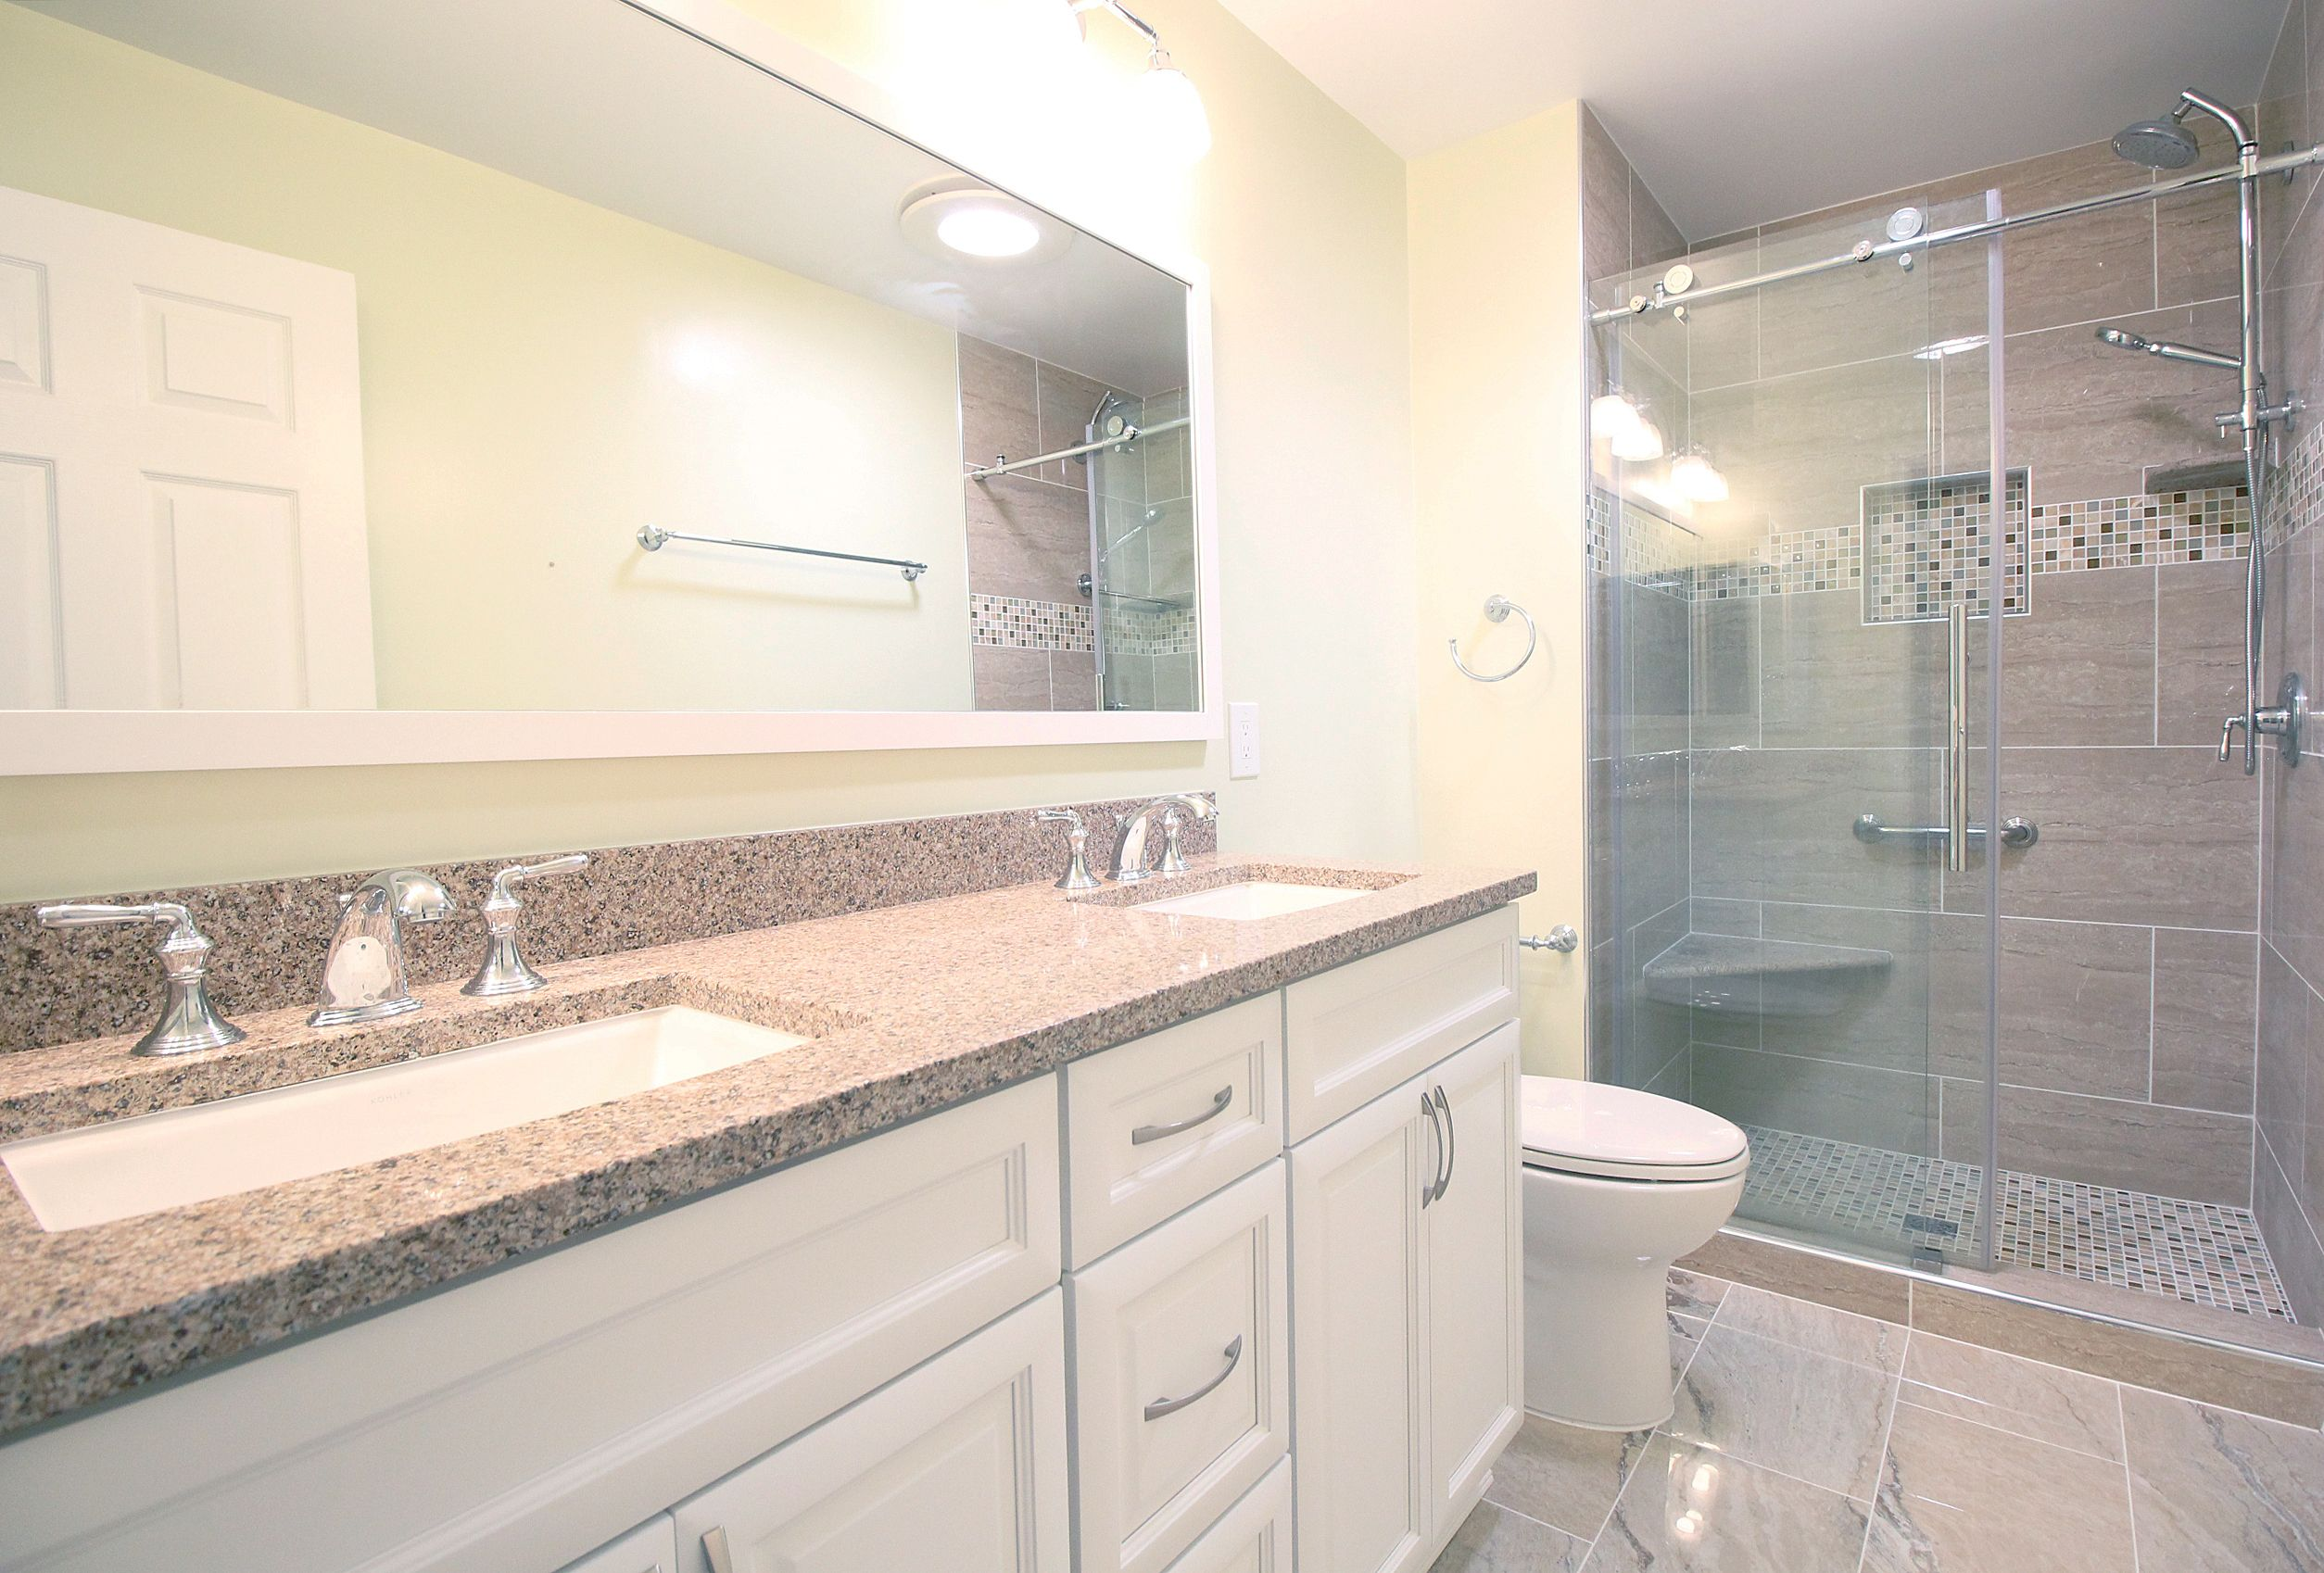 This bathroom features a double vantiy with fauctes from kohler in